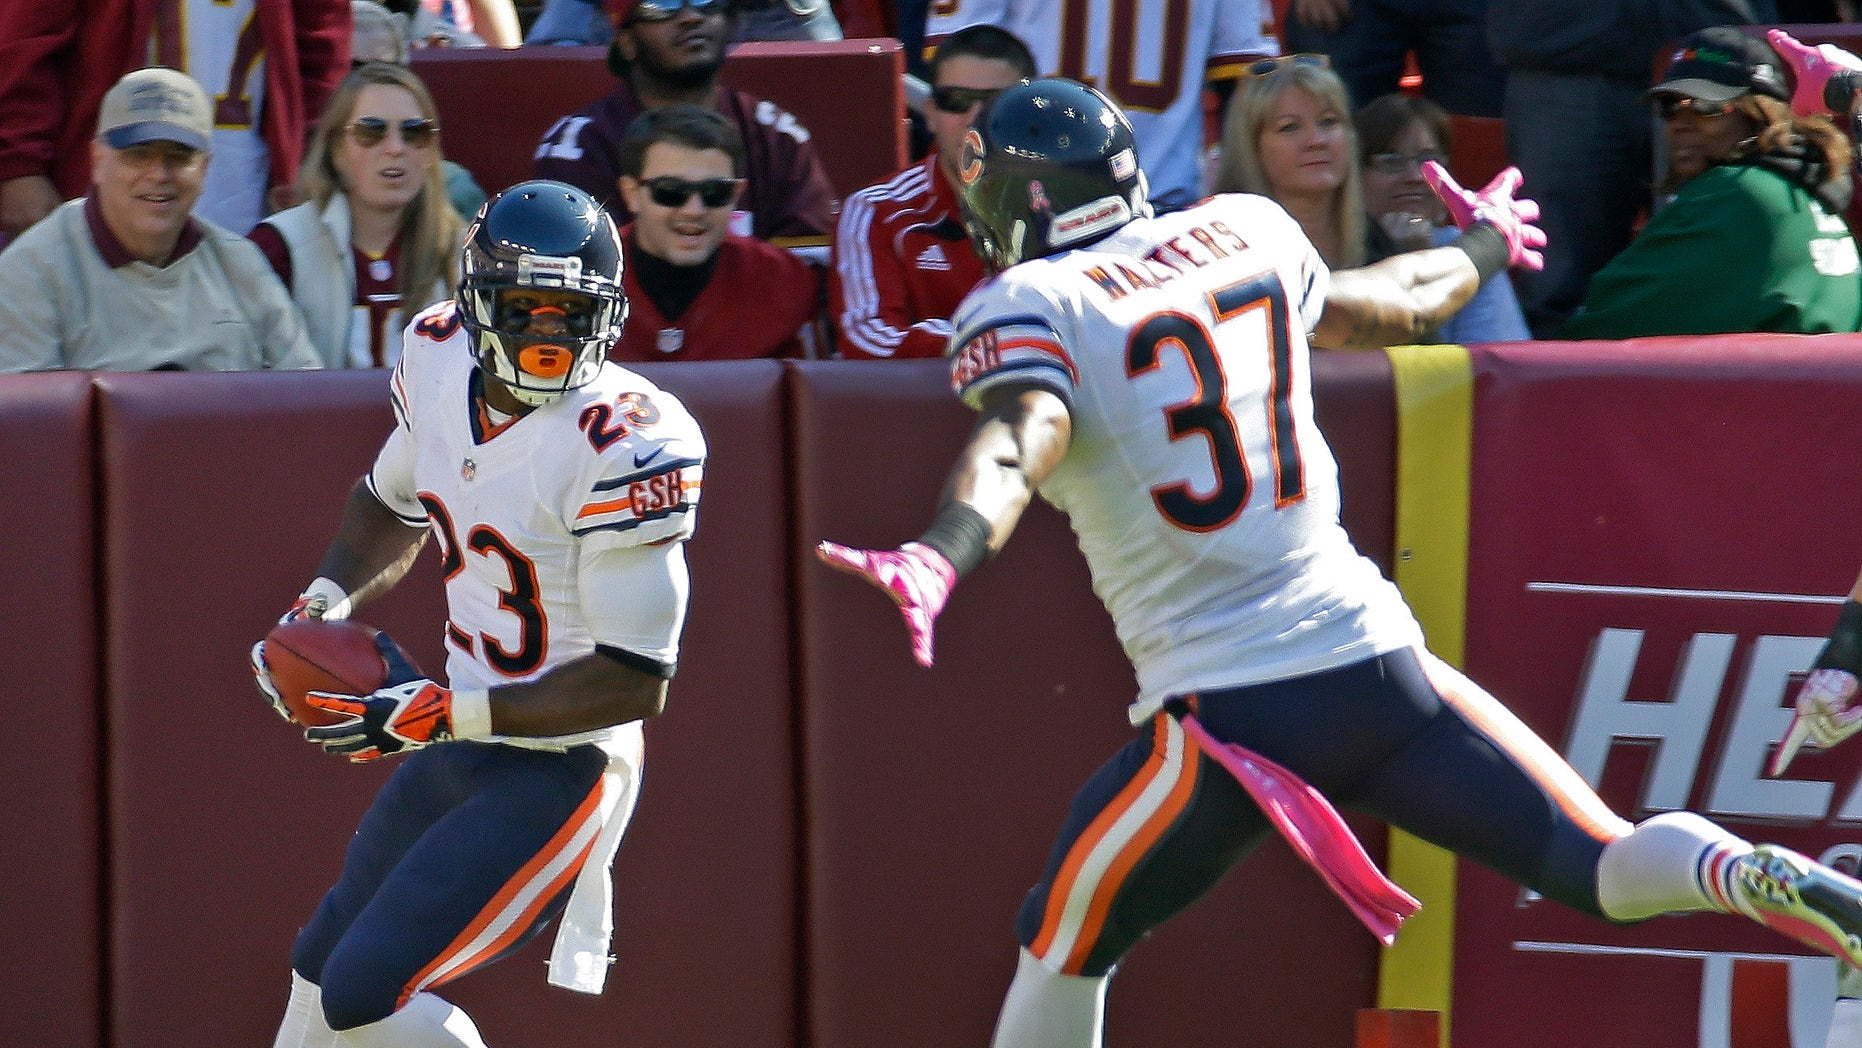 Chicago Bears wide receiver Devin Hester turns and looks at his teammate free safety Anthony Walters after scoring this 19th touchdown on a kickoff return during the first half of a NFL football game against the Washington Redskins in Landover, Md., Sunday, Oct. 20, 2013. (AP Photo/Alex Brandon)